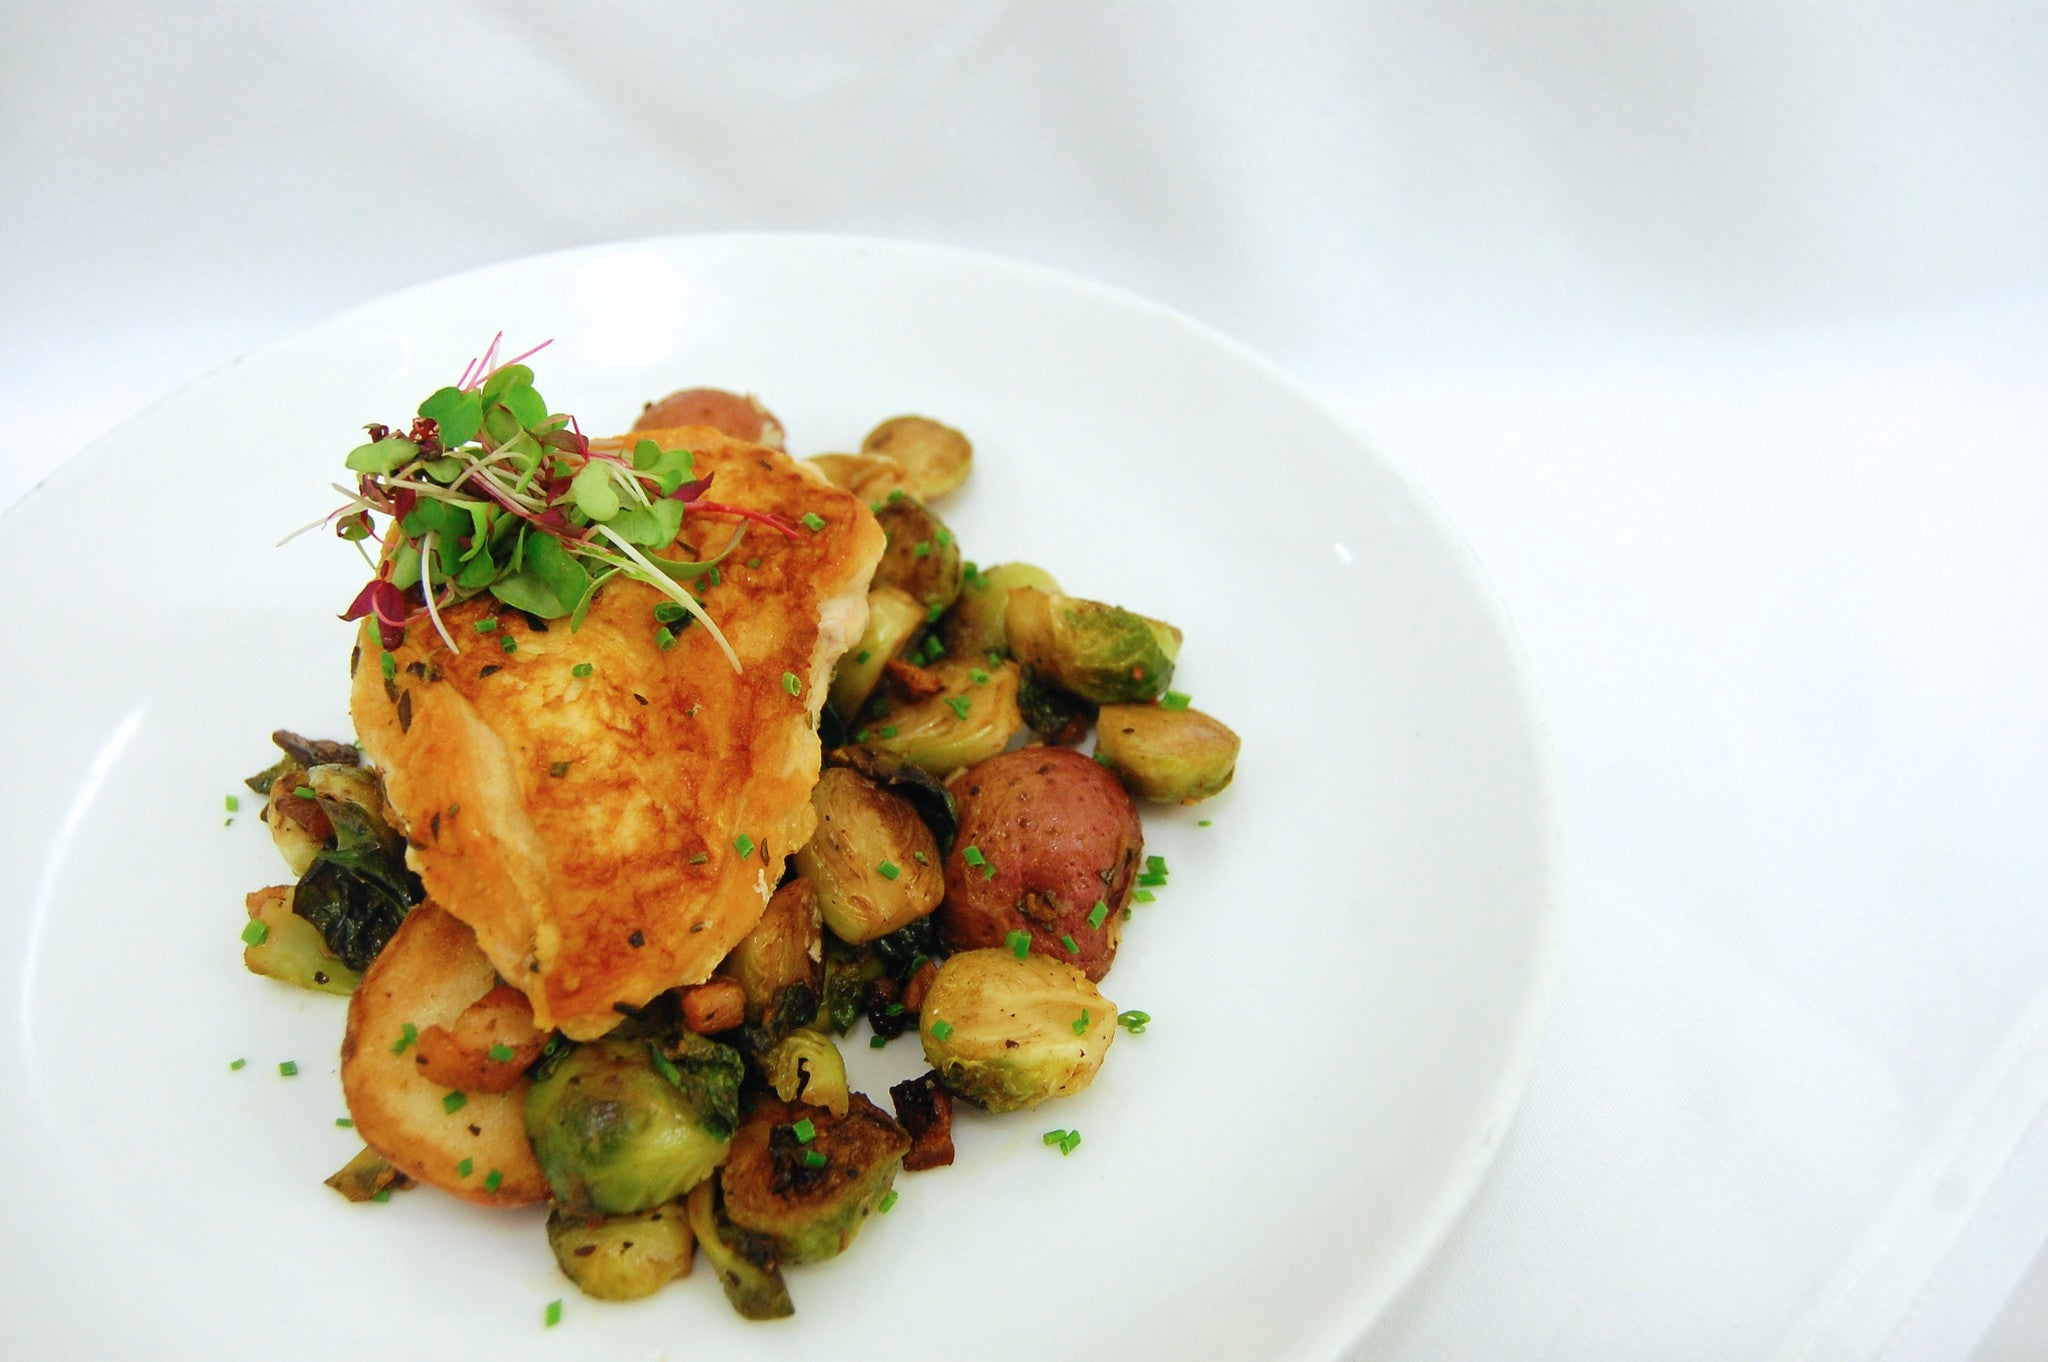 Rosemary Chicken, Roasted Brussel Sprouts & Roasted Potatoes